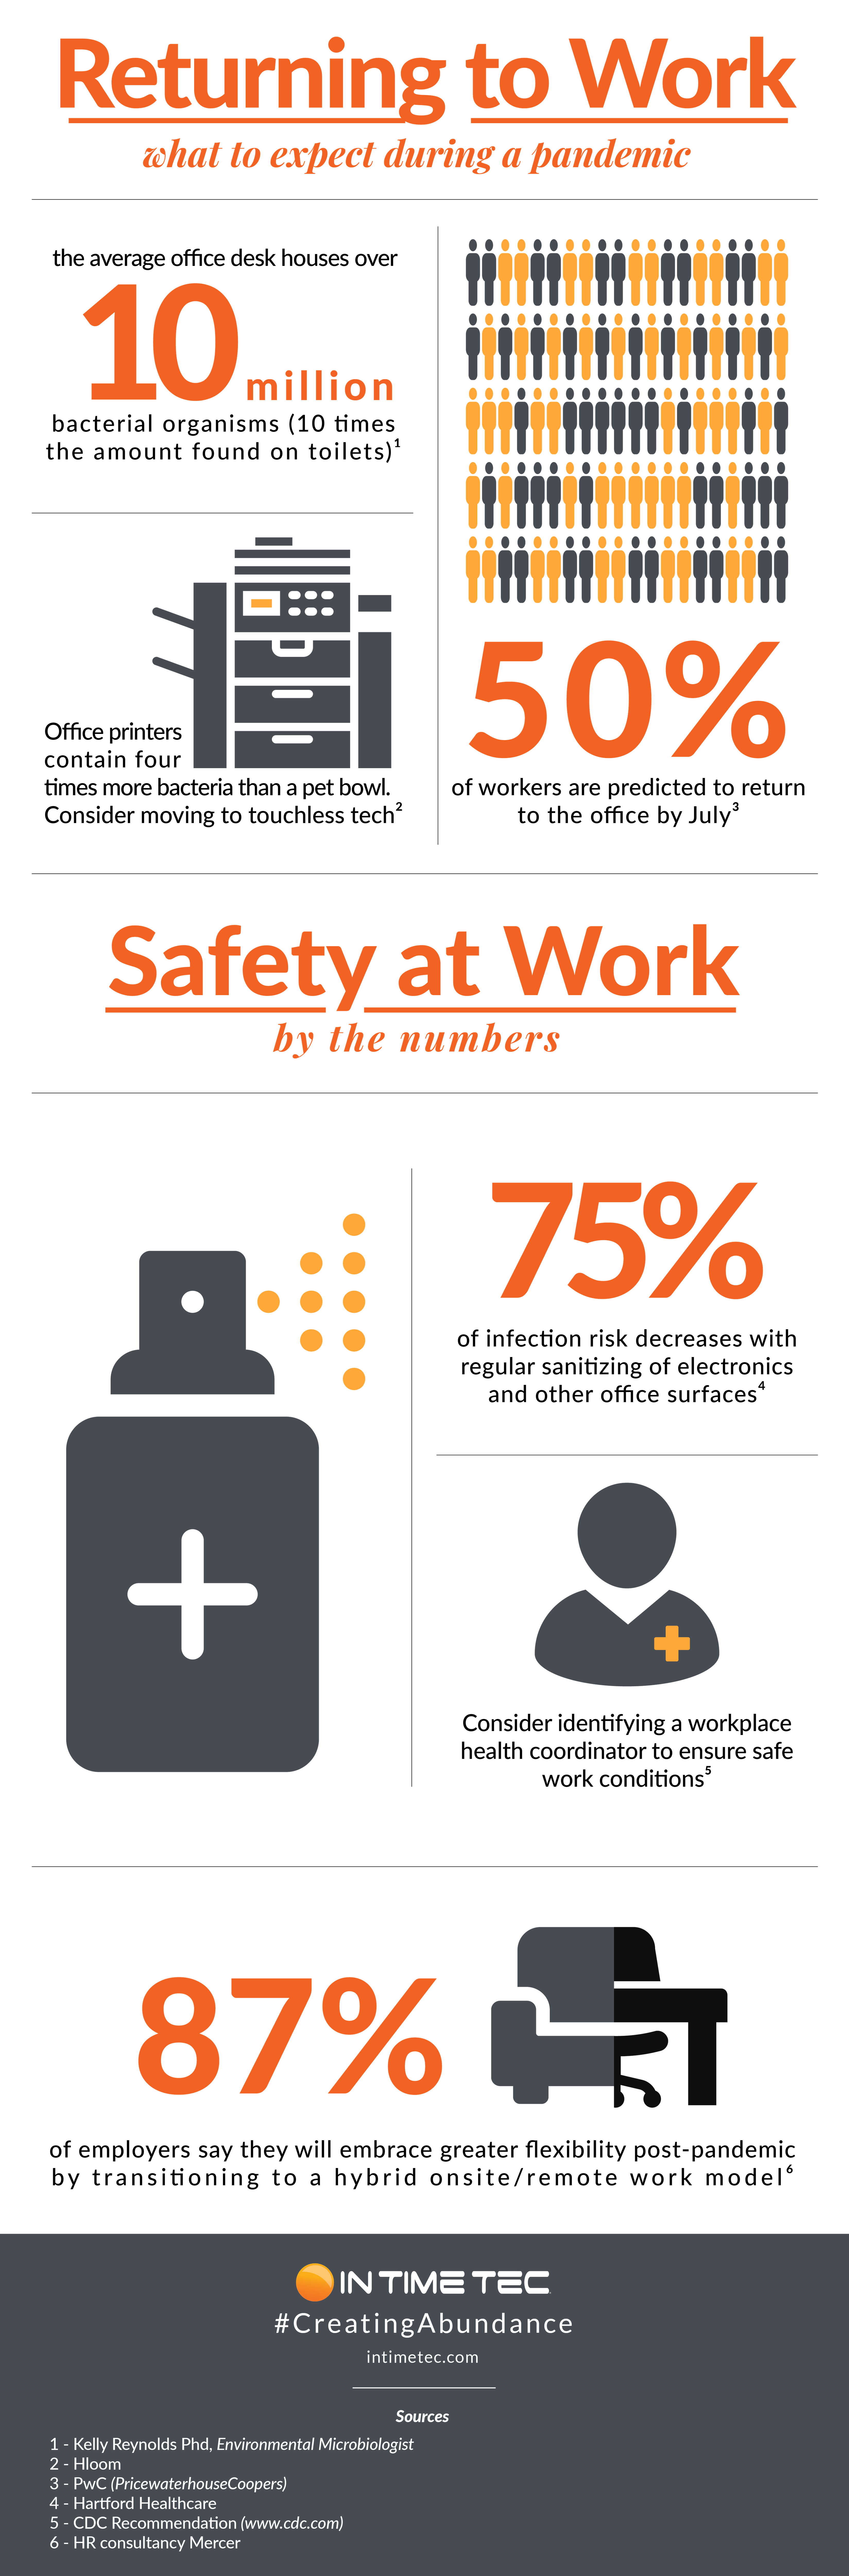 Safe Return to Work Infographic 2